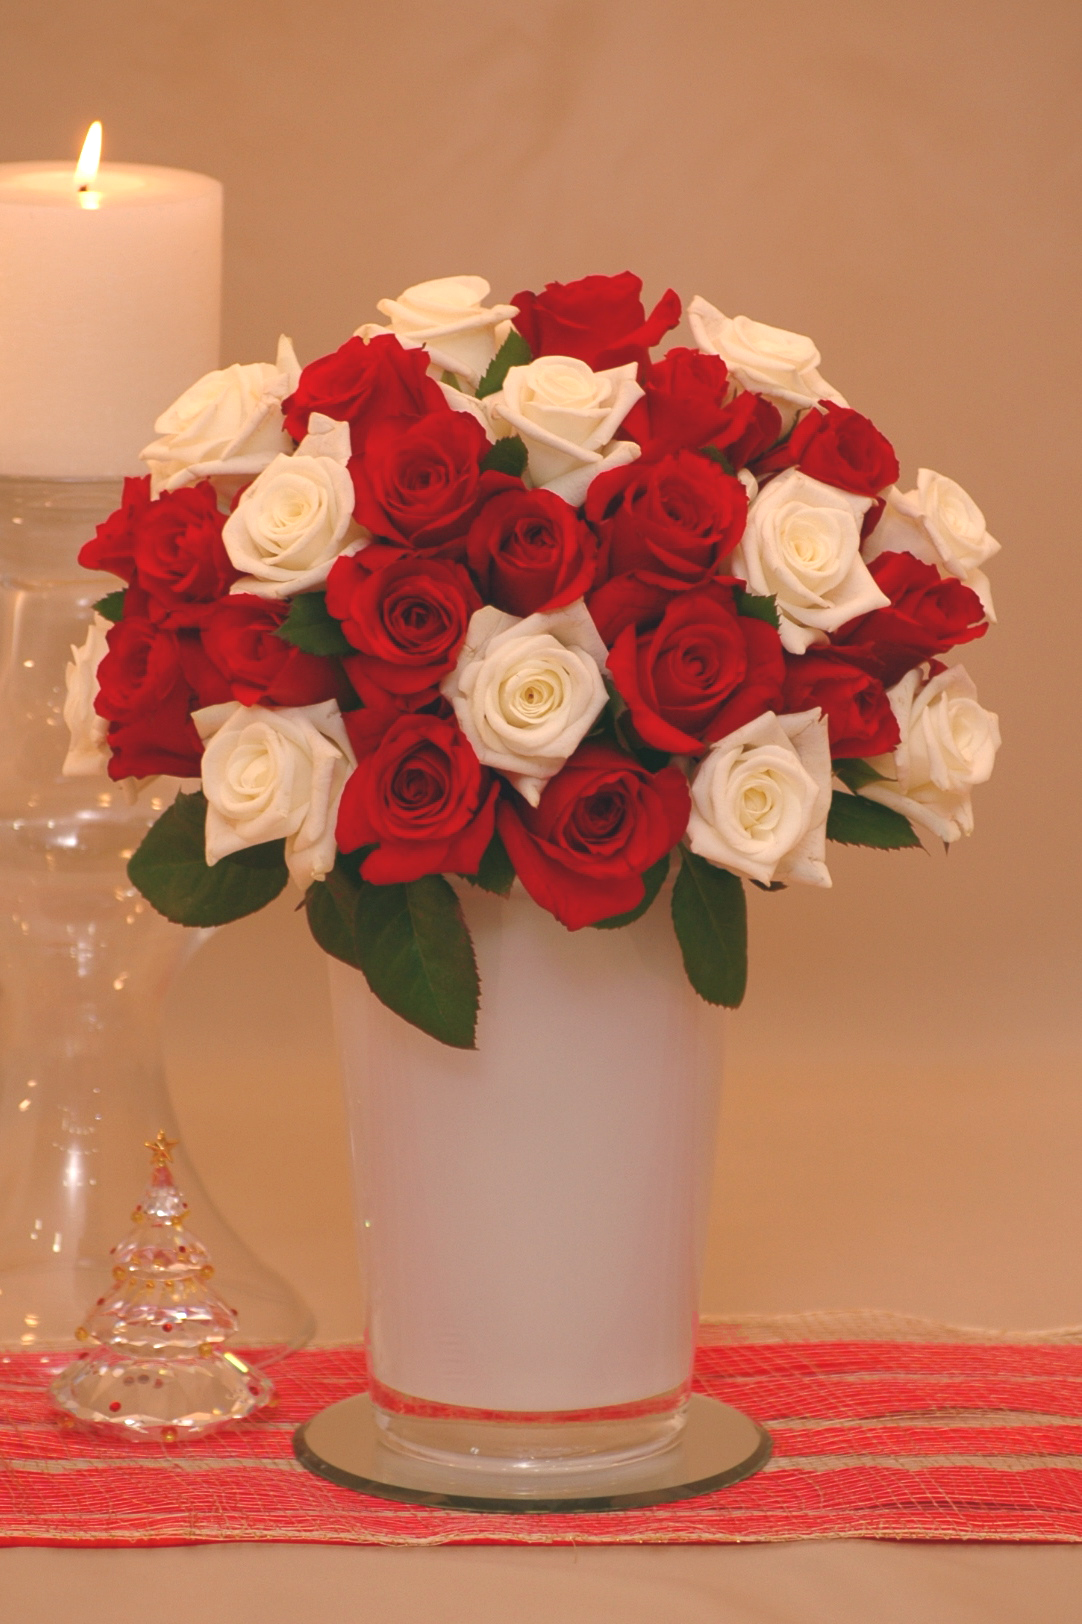 Santa's Hat Rose Bouquet